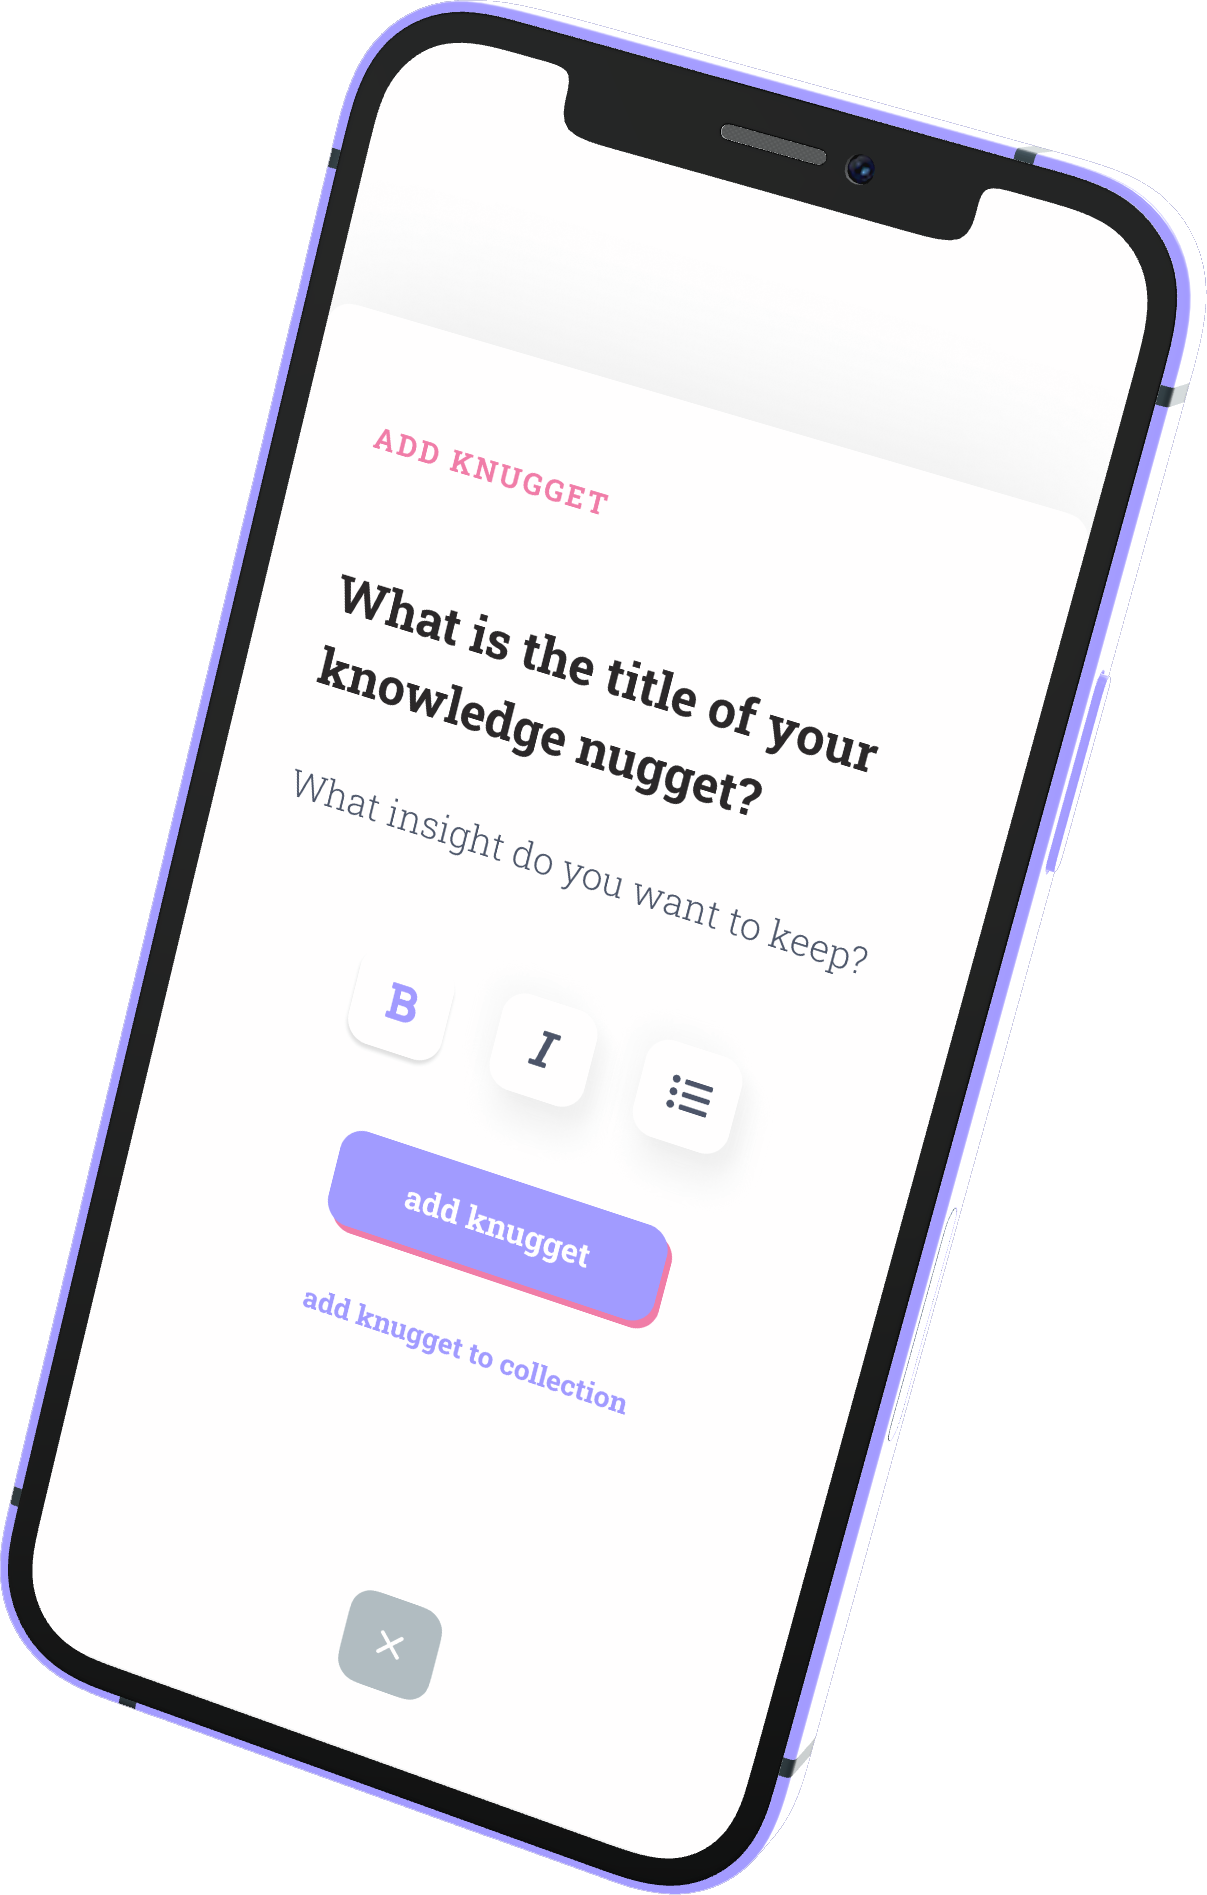 Add Knugget app download for iPhone and Android